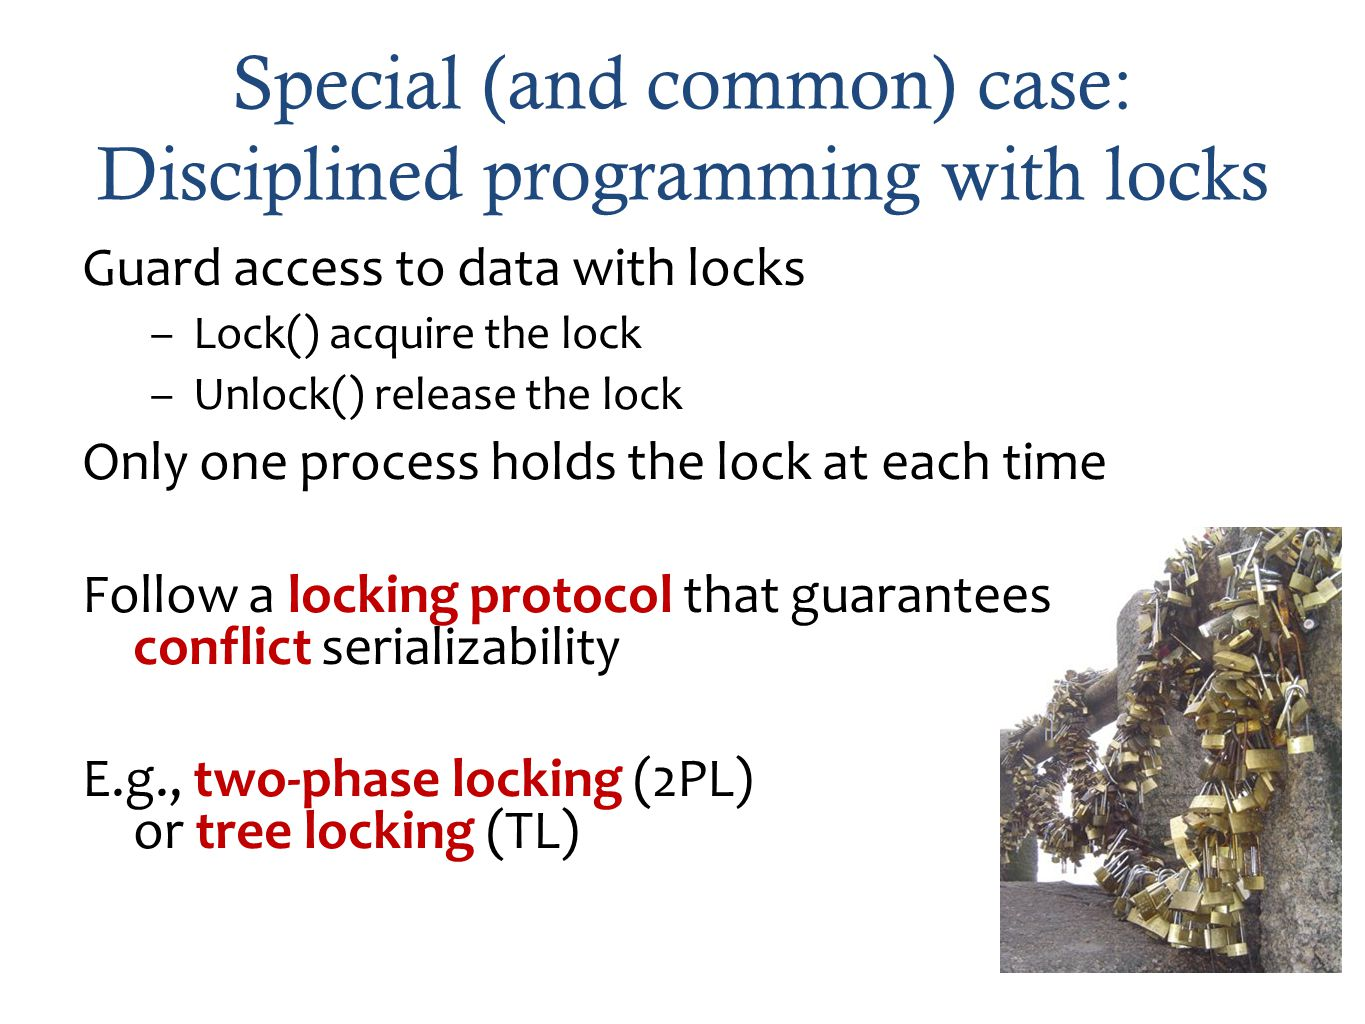 Special (and common) case: Disciplined programming with locks Guard access to data with locks –Lock() acquire the lock –Unlock() release the lock Only one process holds the lock at each time Follow a locking protocol that guarantees conflict serializability E.g., two-phase locking (2PL) or tree locking (TL)